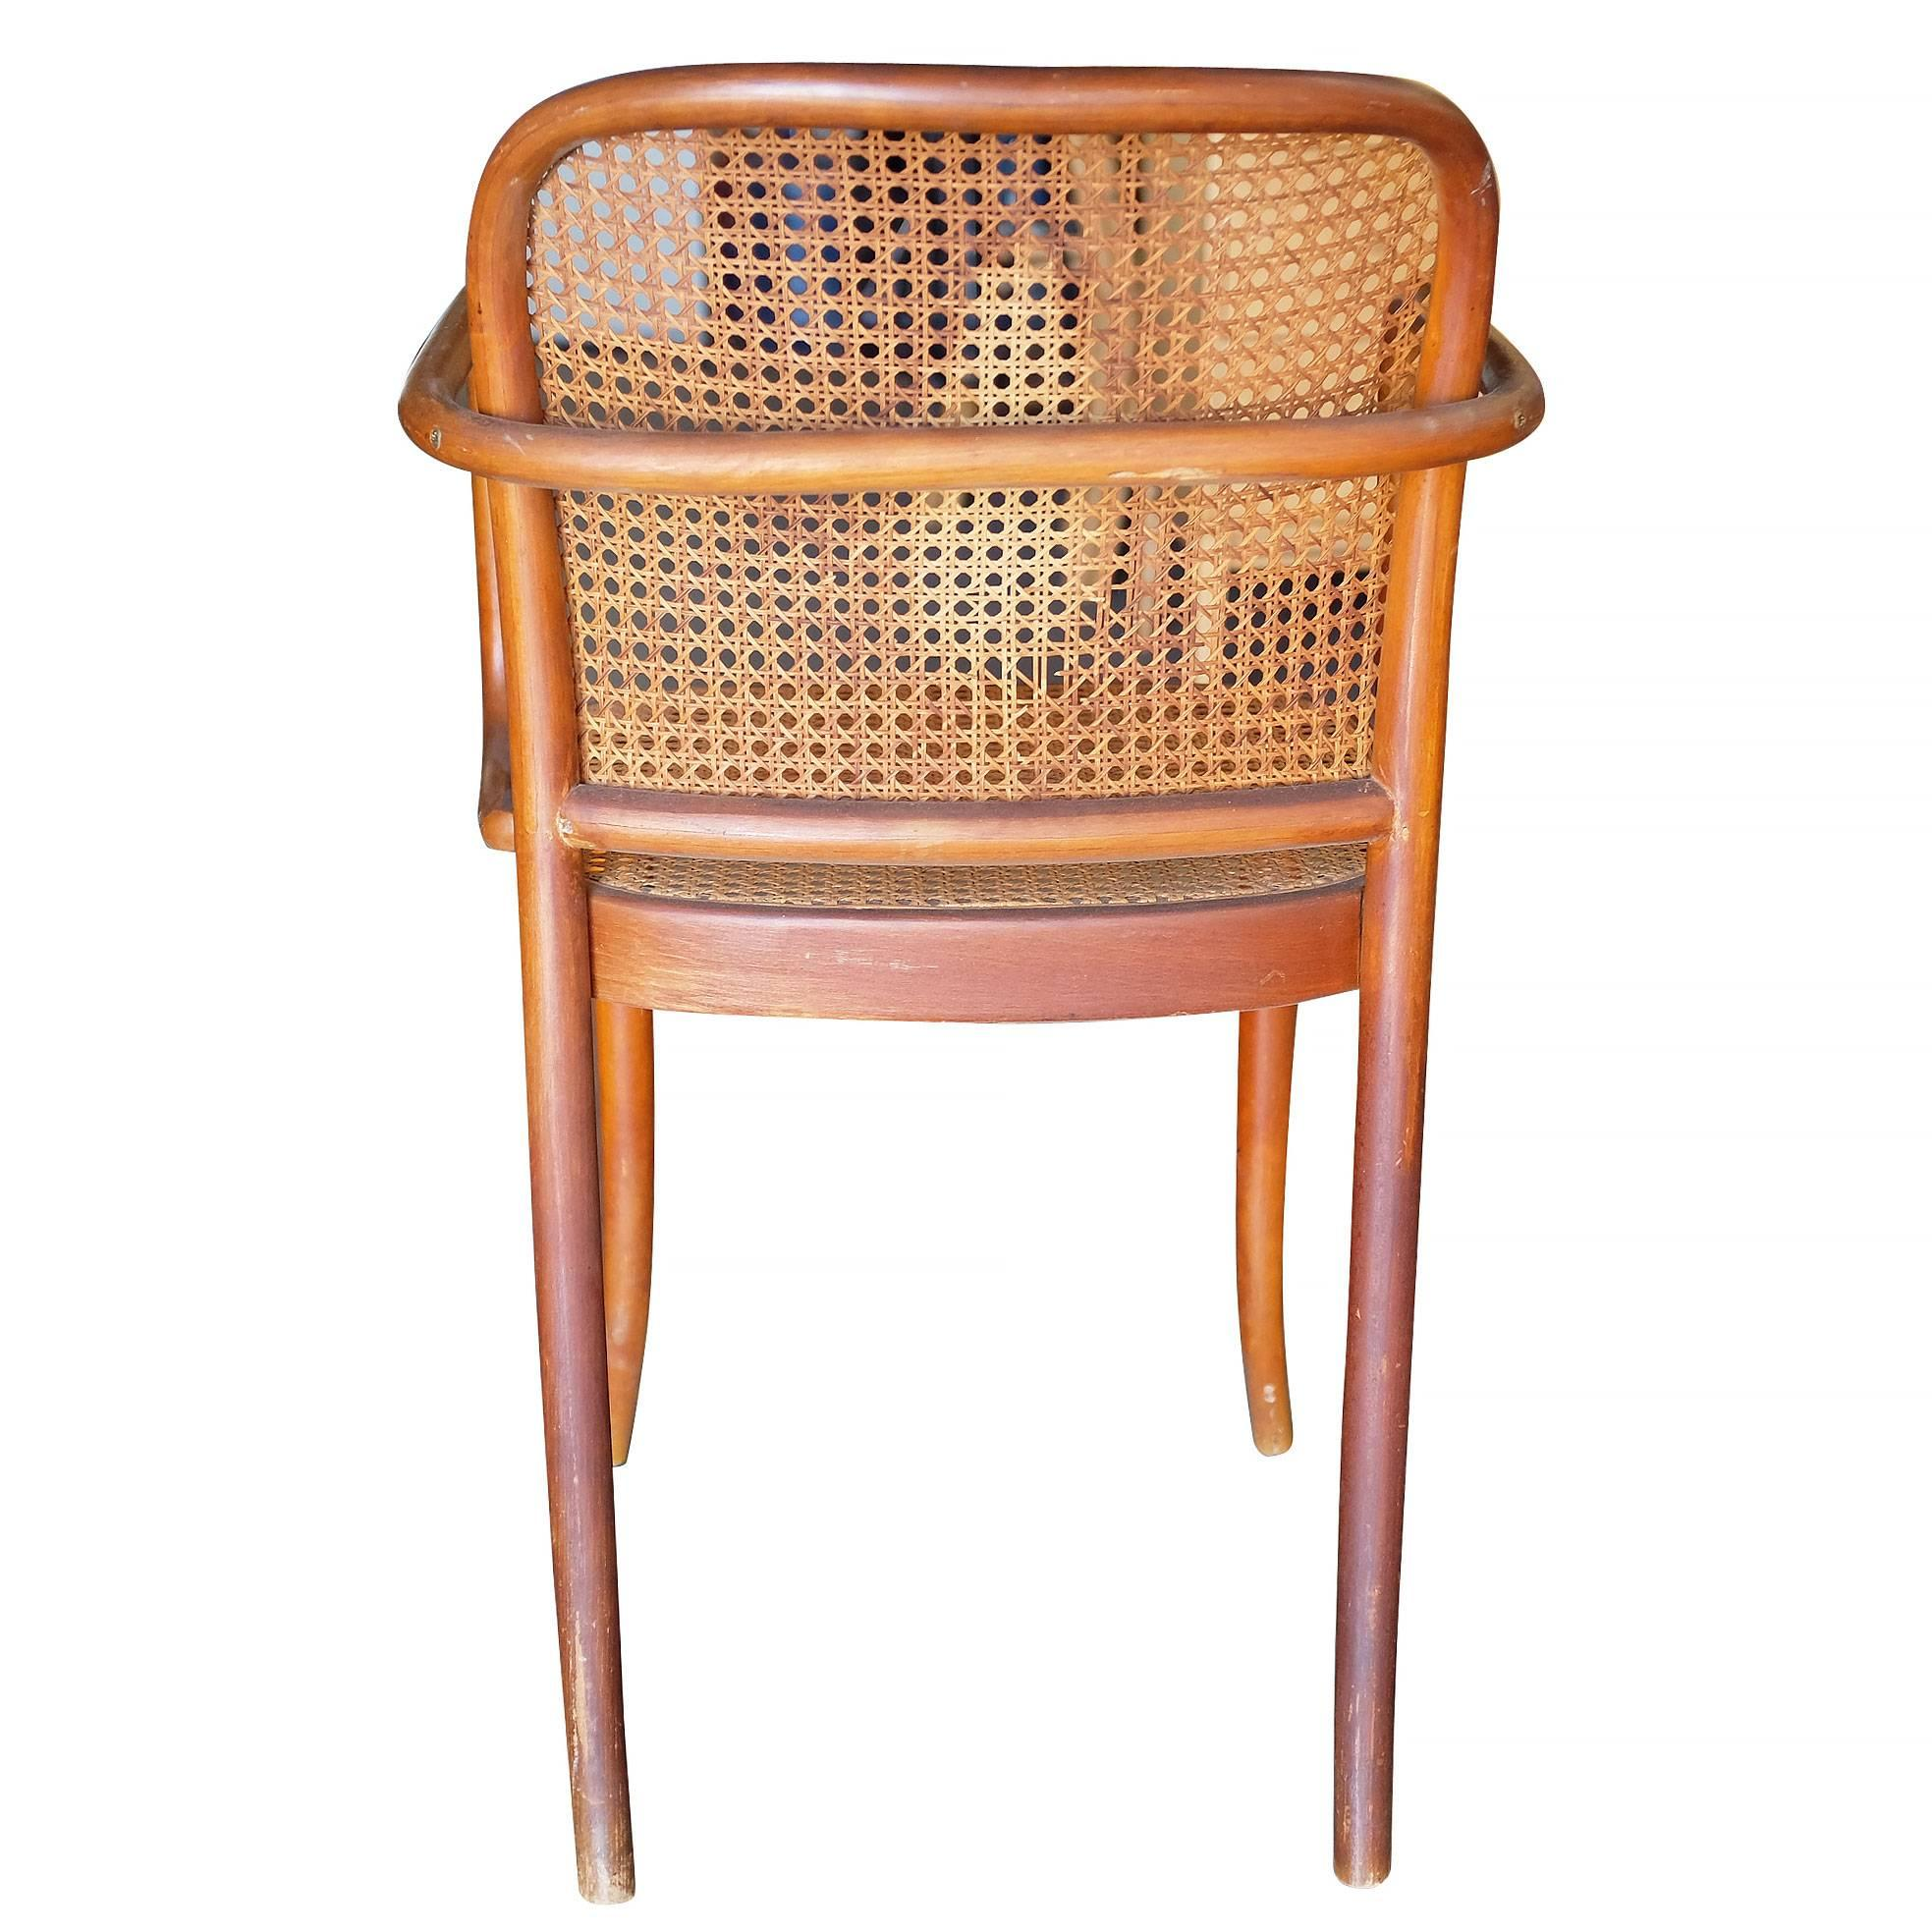 Delightful Early 20th Century Josef Hoffmann No 811 Bentwood Cane Chair By Thonet, Set  Of Four